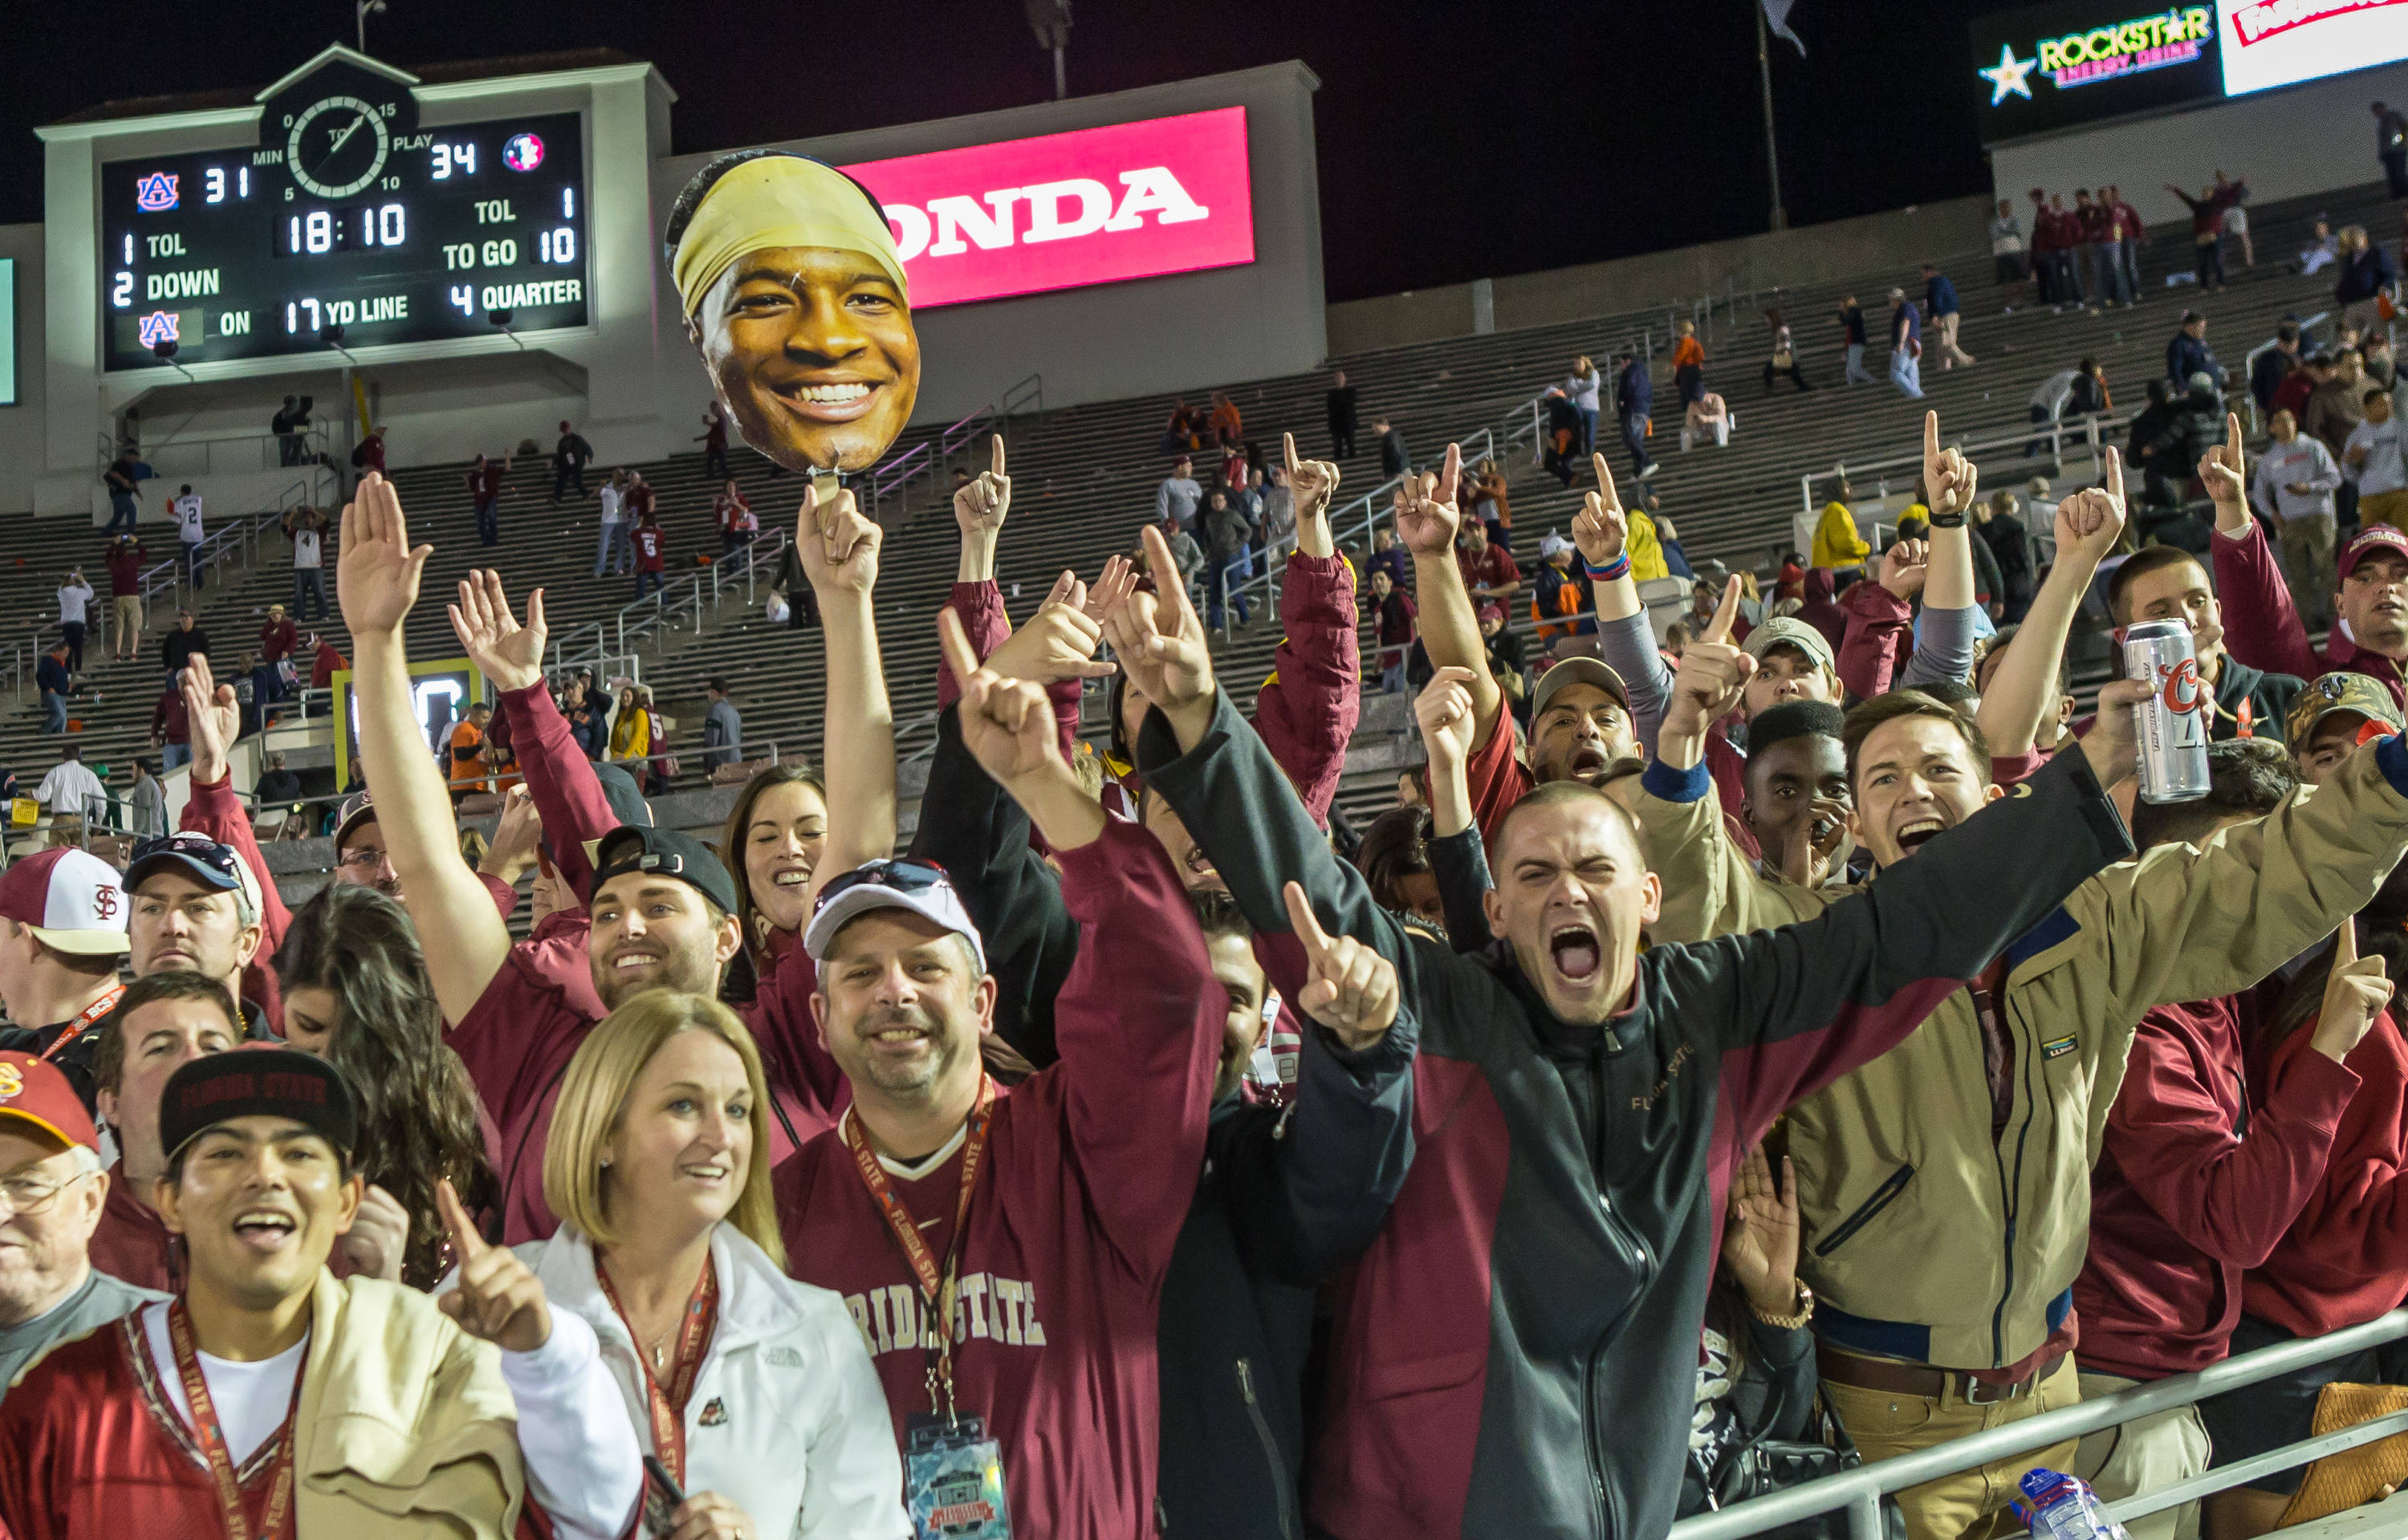 Jubilant Seminole fans celebrate the title with the Rose Bowl scoreboard in the background.